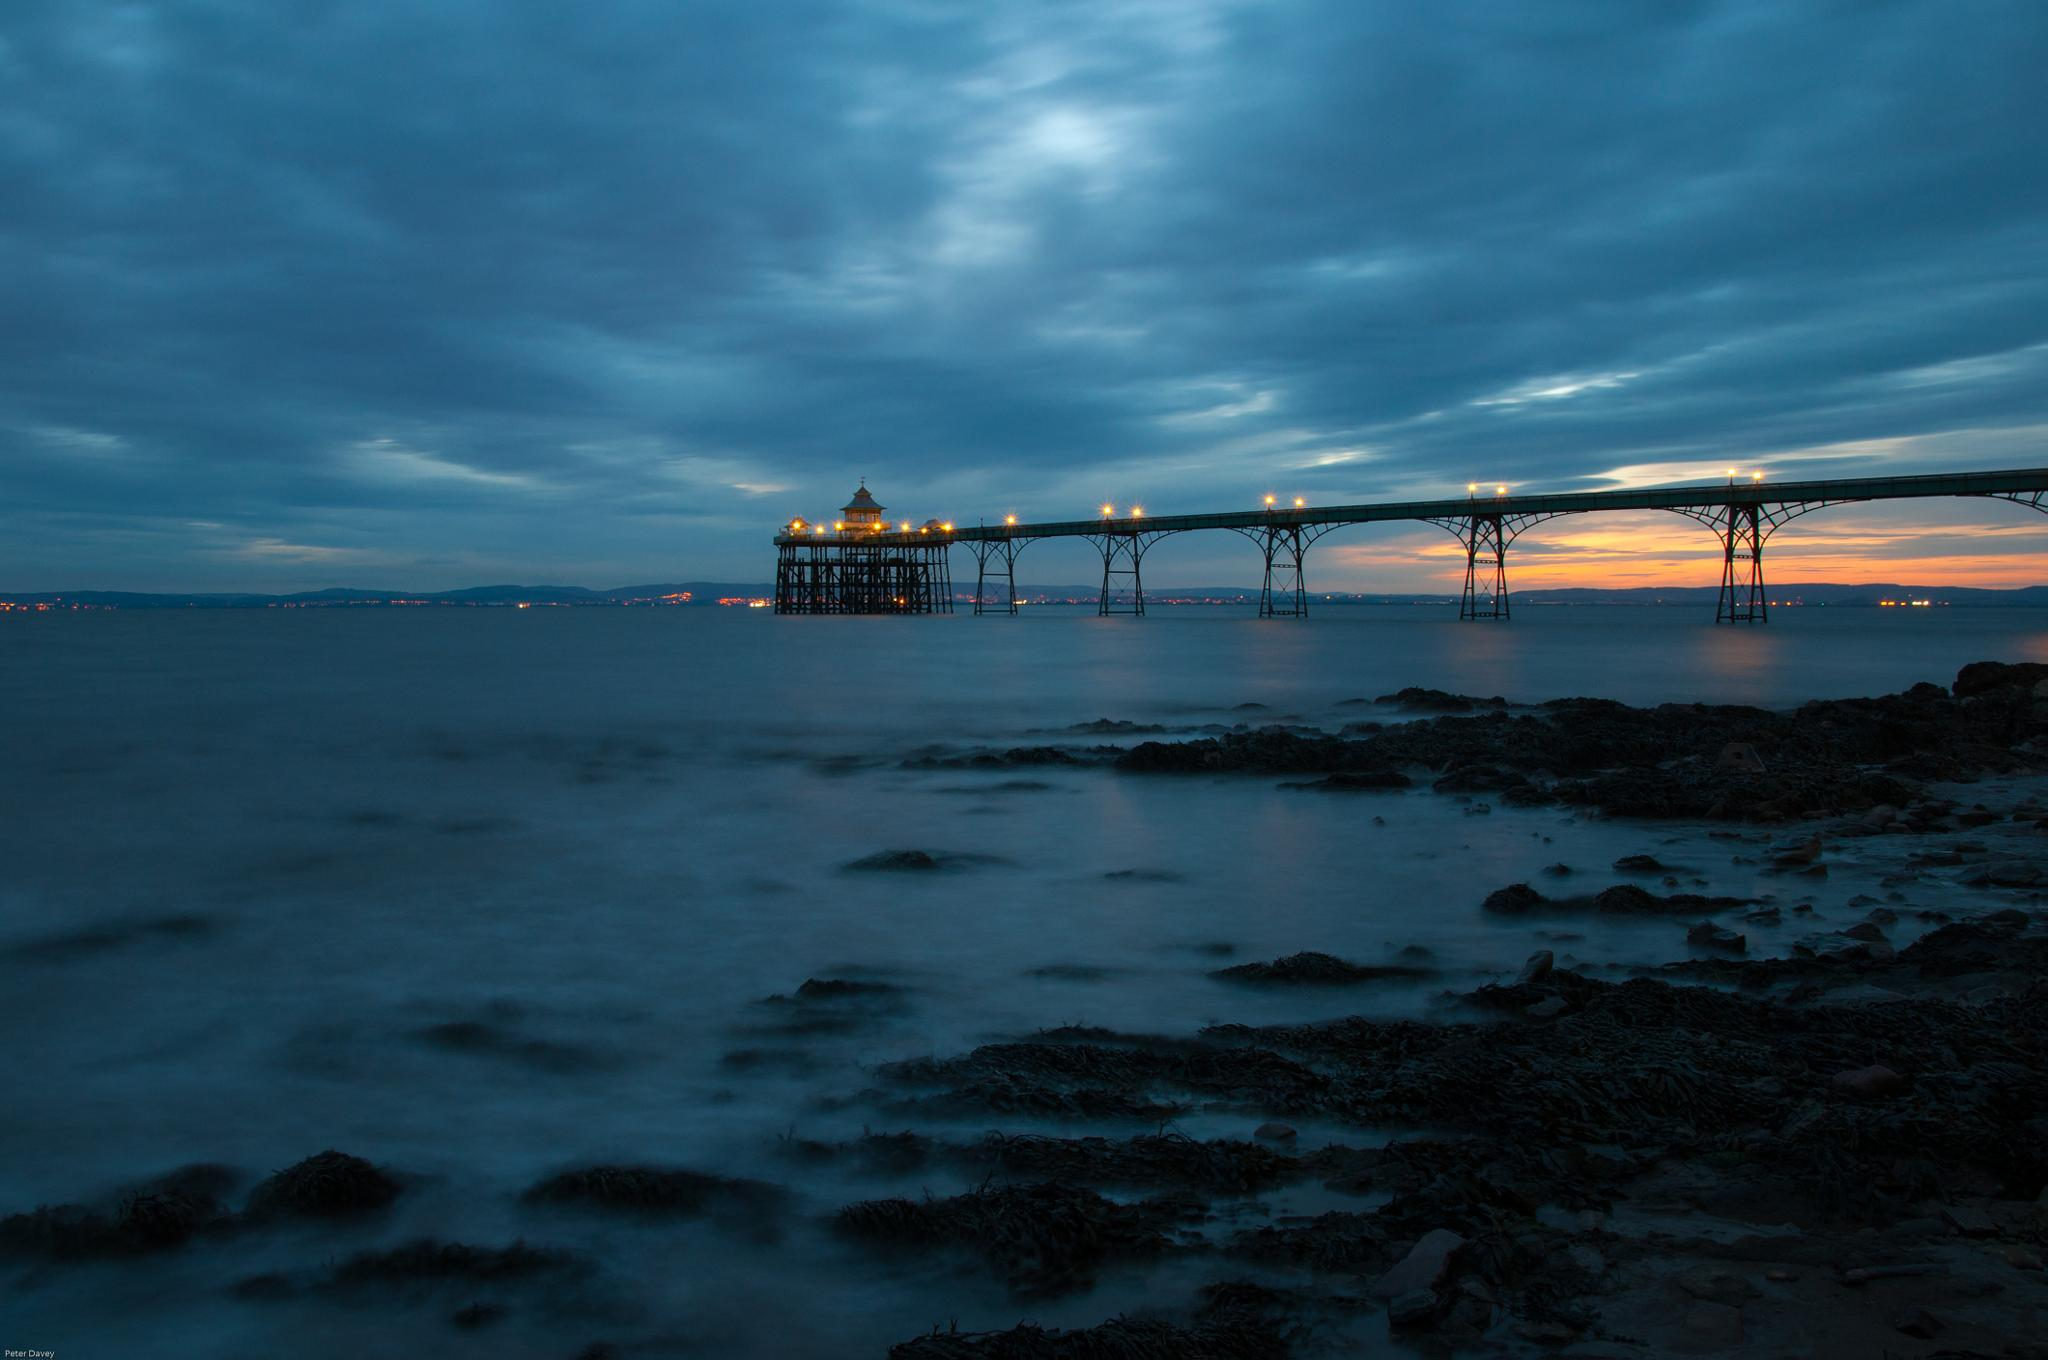 Clevedon Pier by peter.davey.169